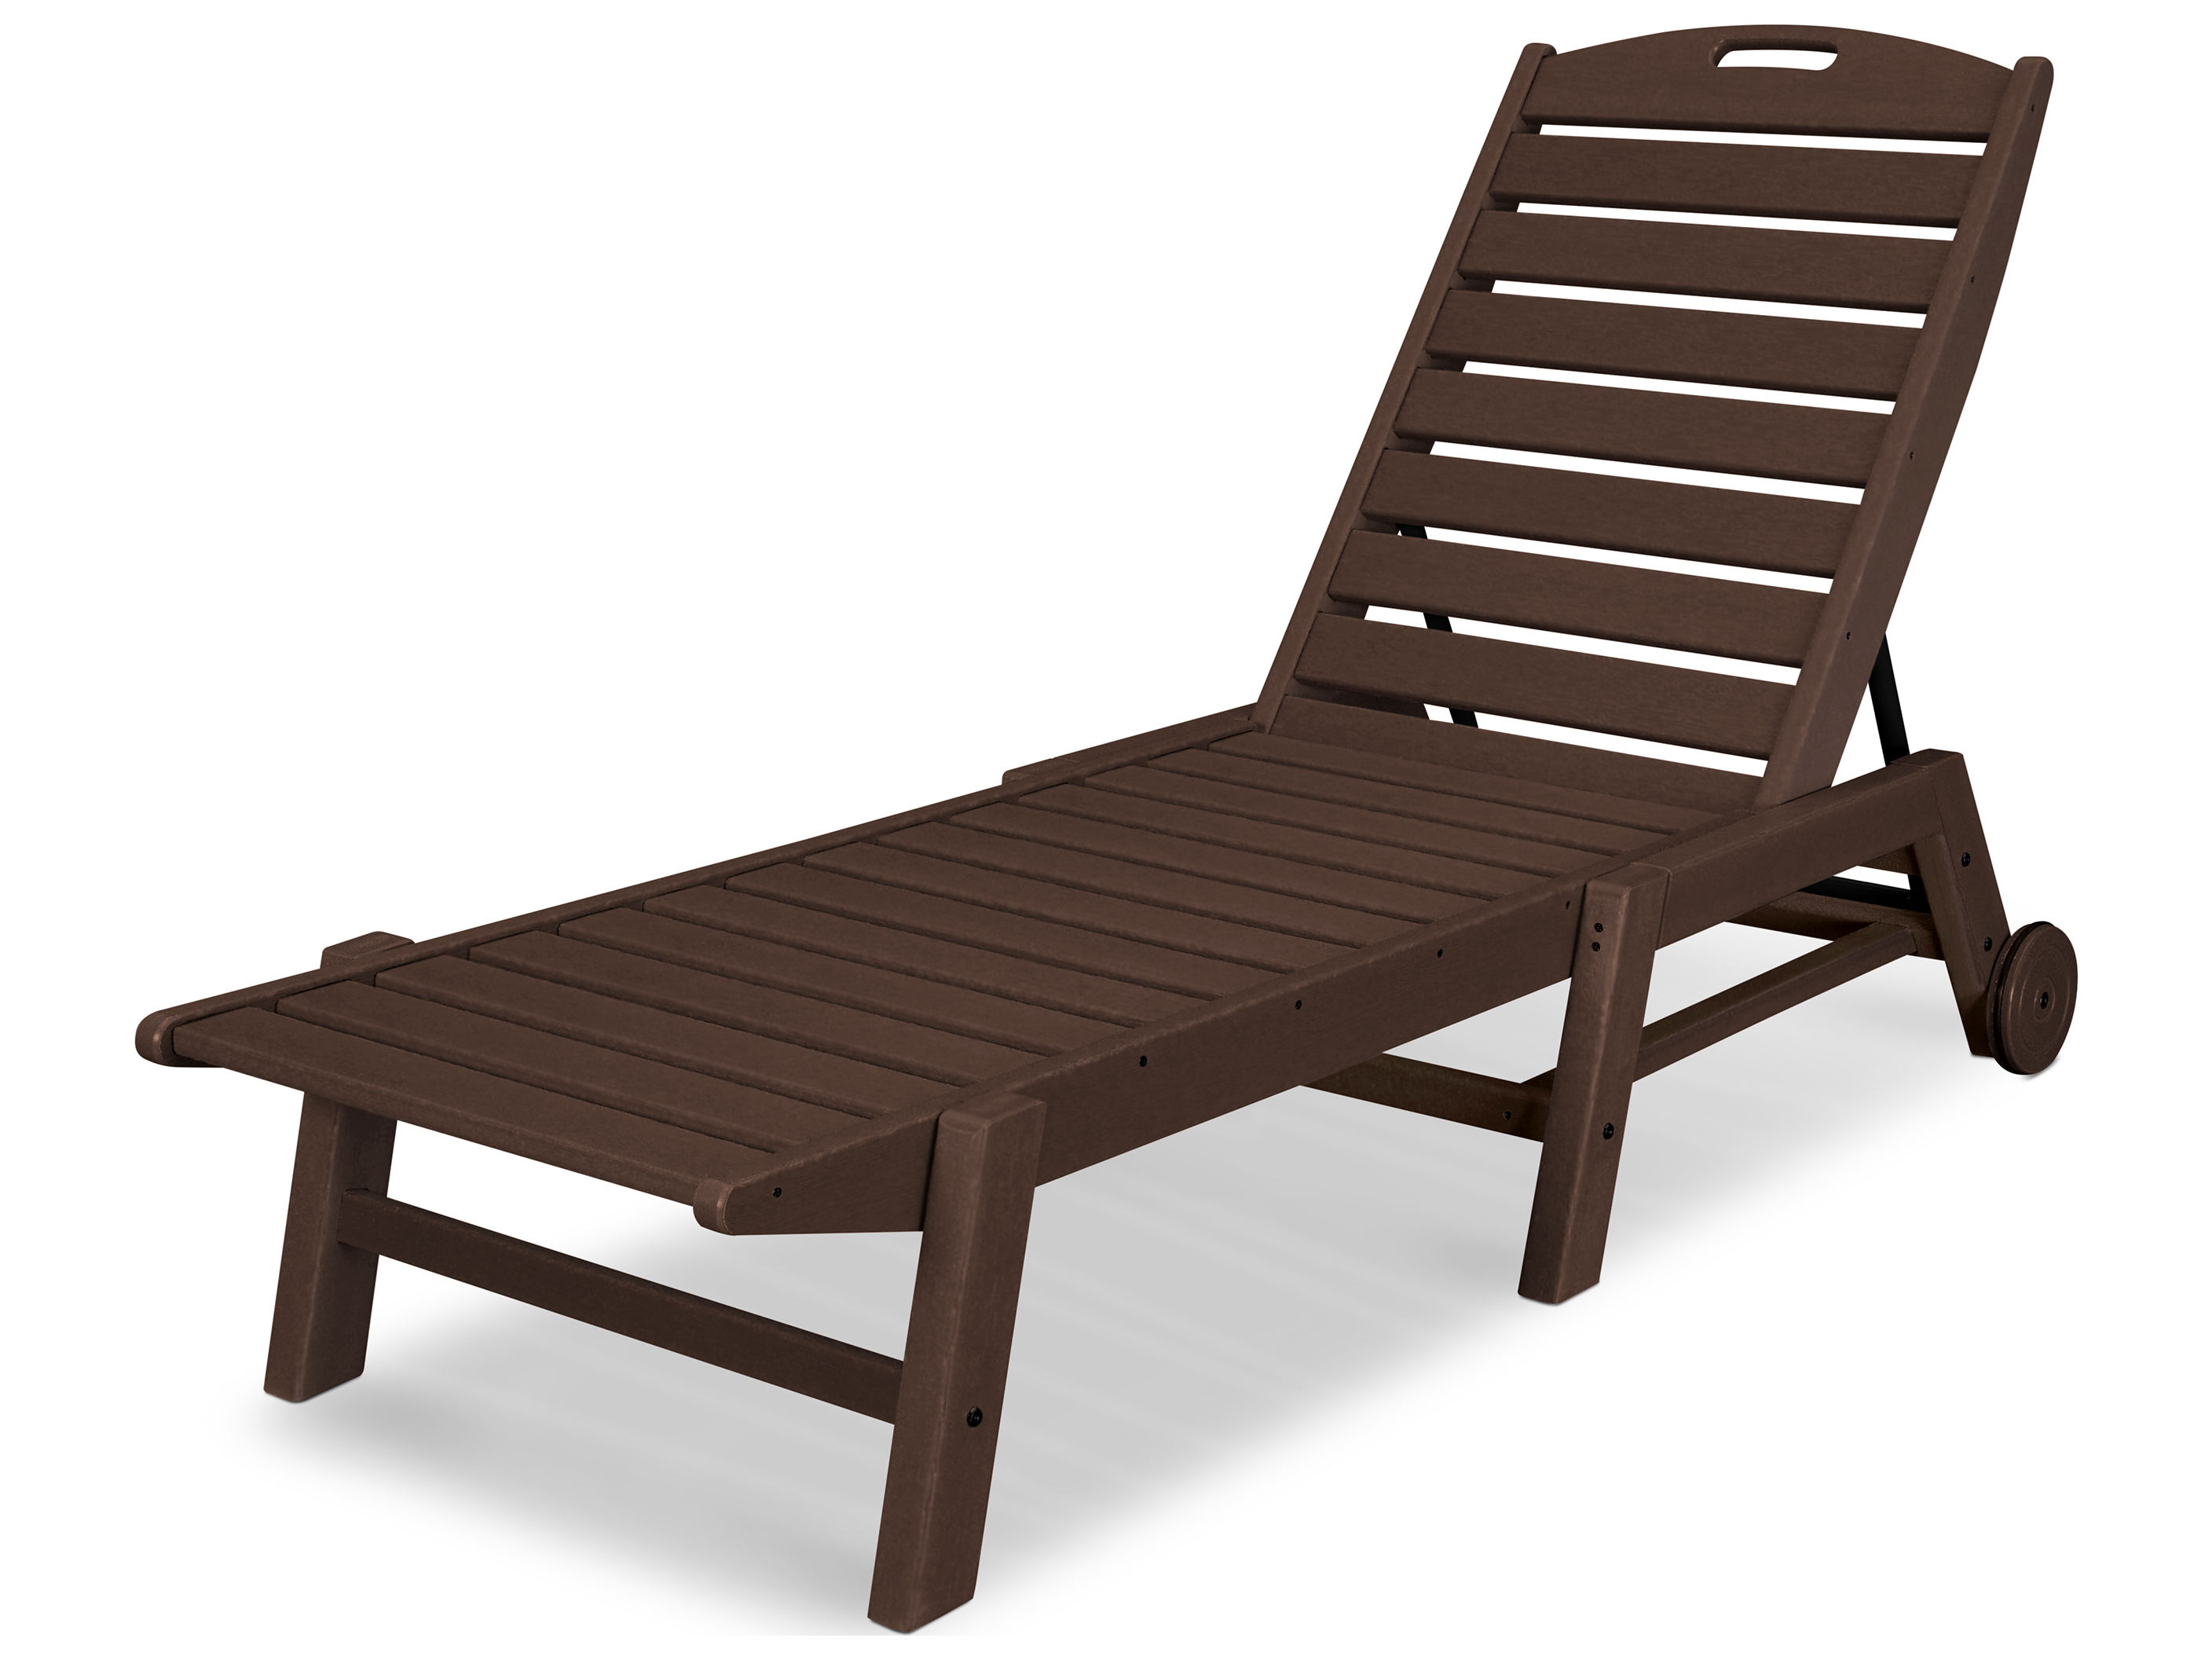 POLYWOOD Nautical Recycled Plastic Stackable Chaise Lounge NAW2280